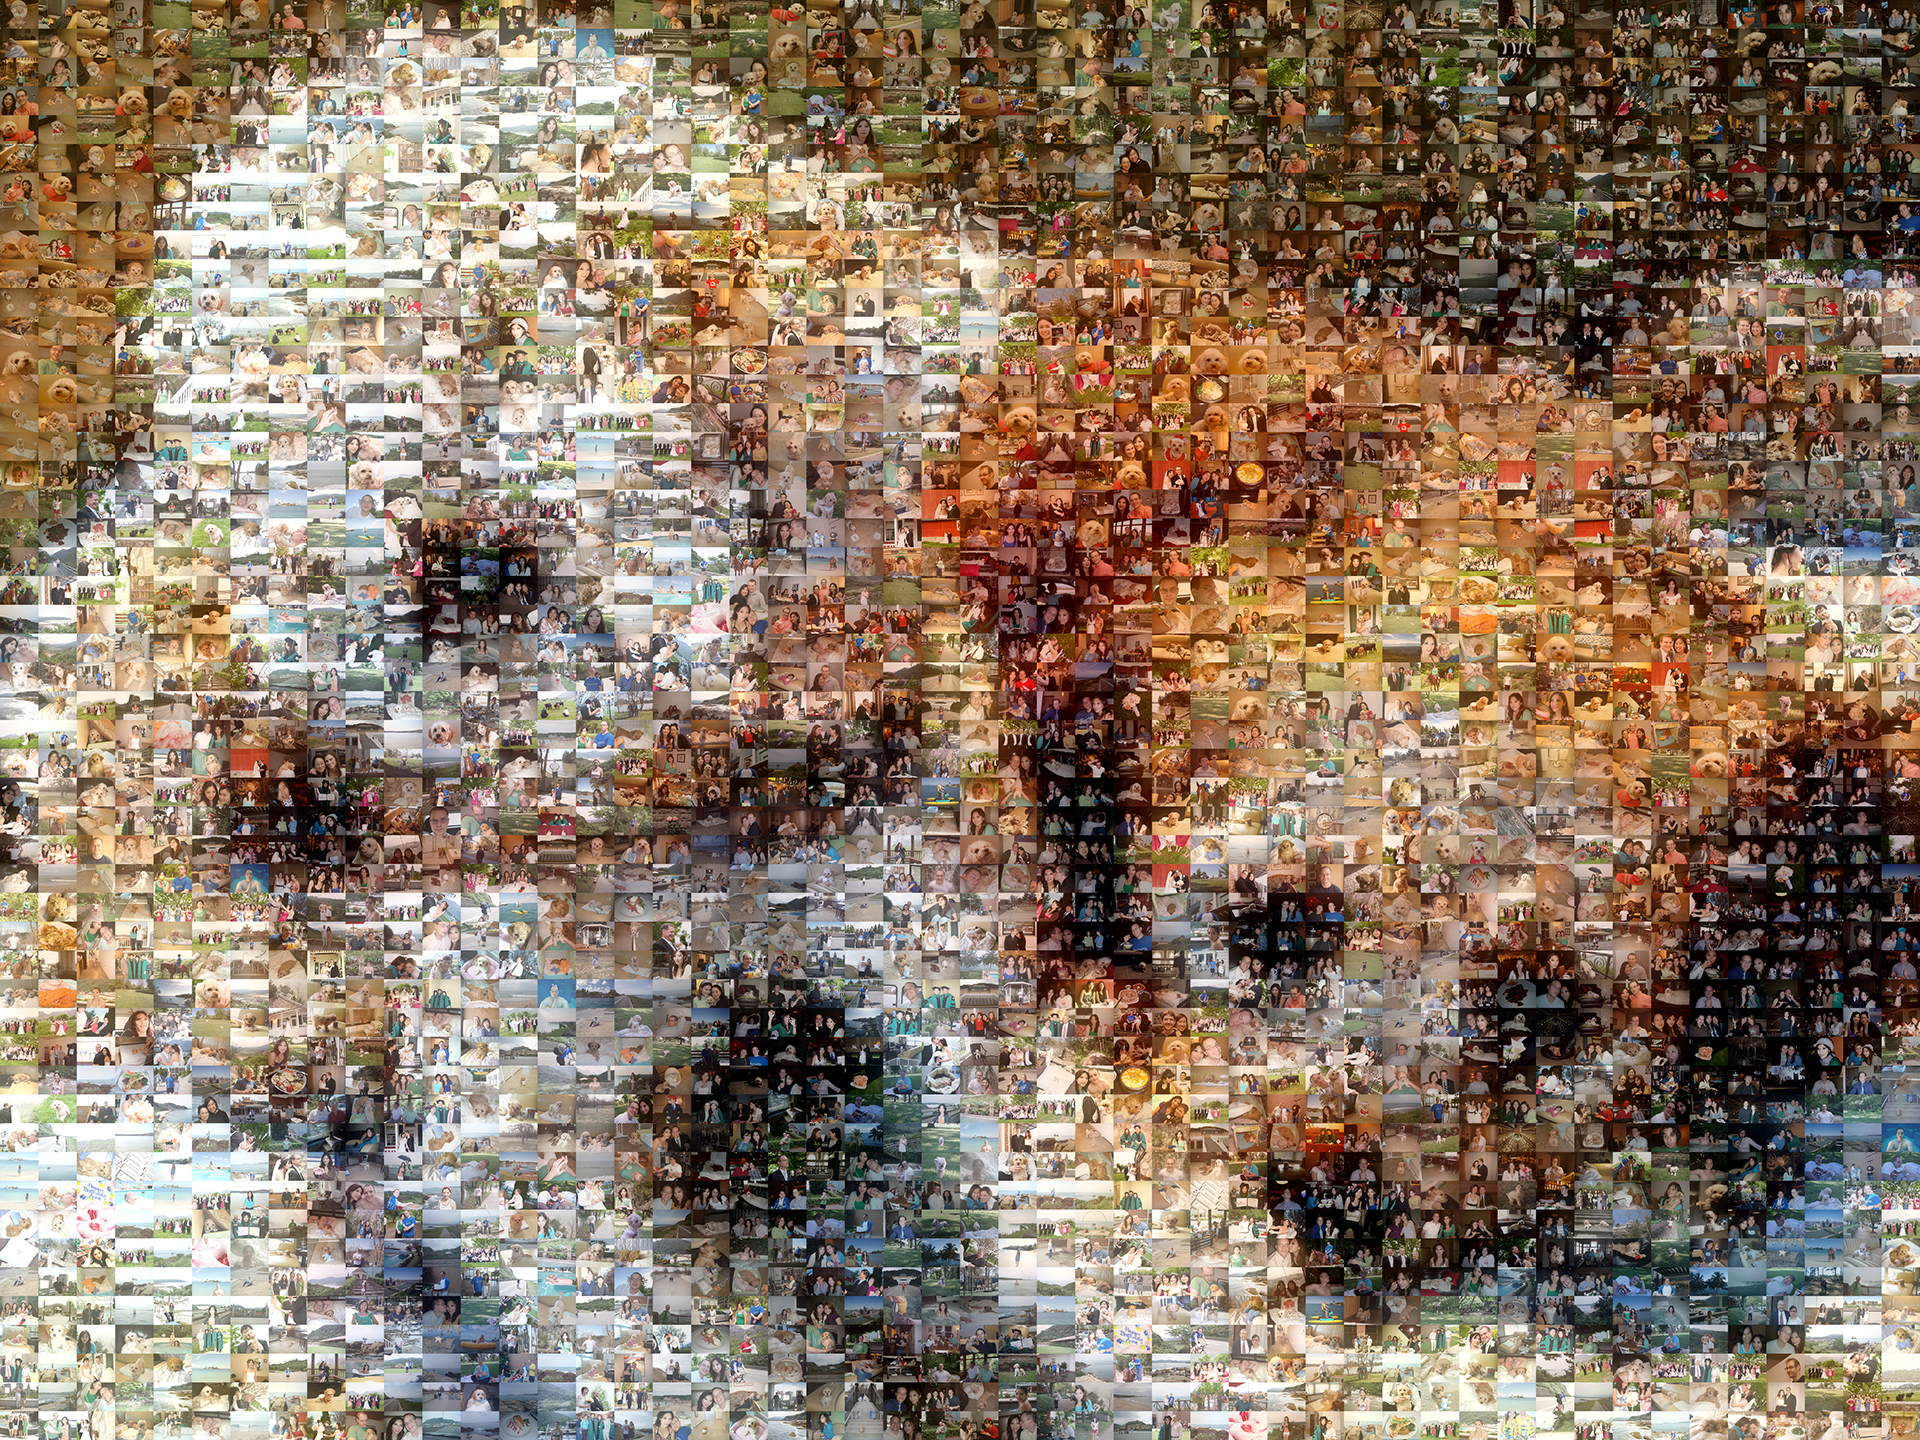 photo mosaic created using almost 1,300 customer selected photos